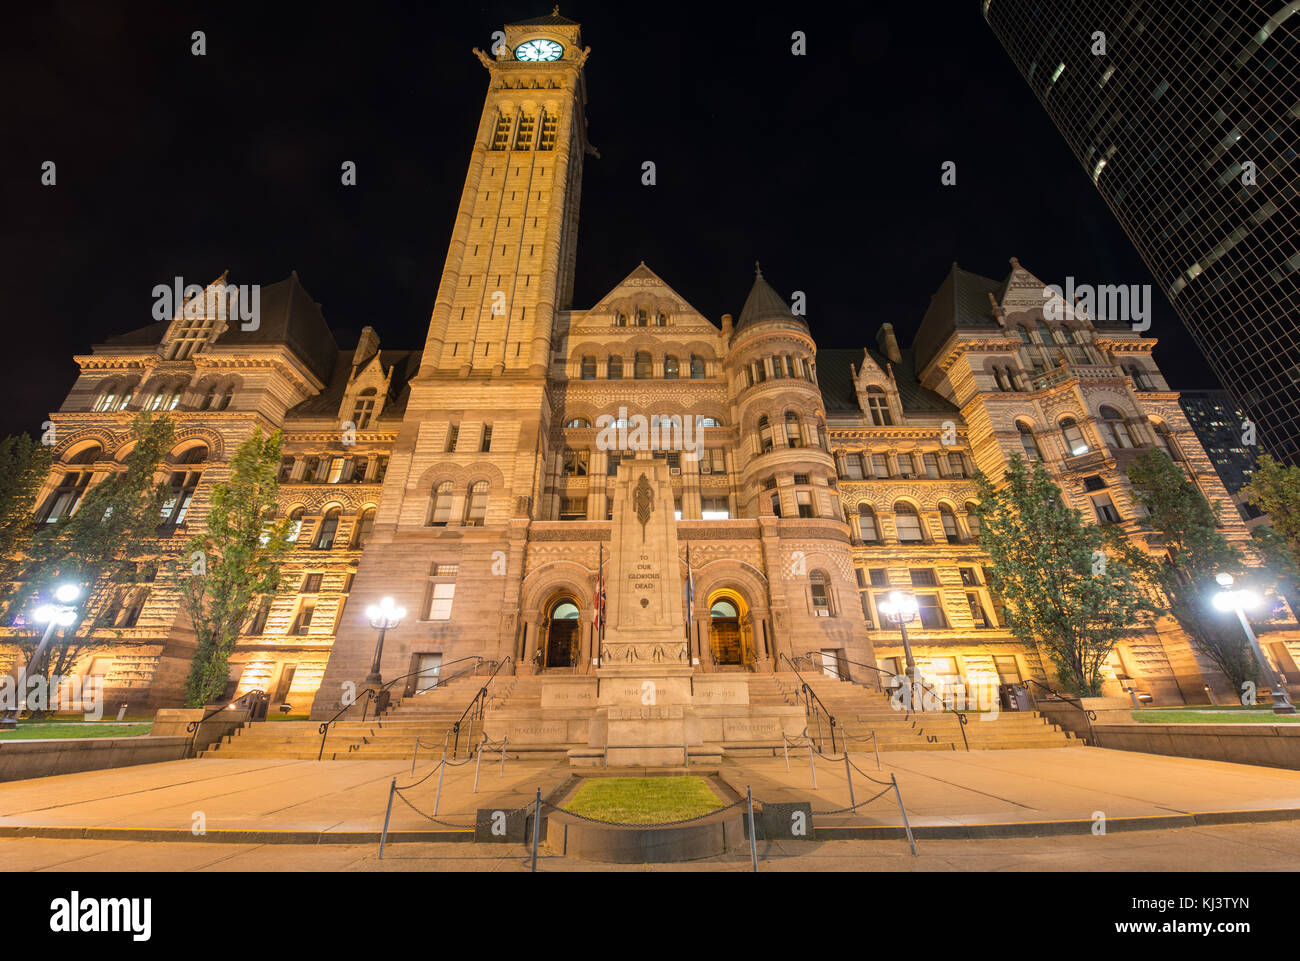 Toronto's Old City Hall at night. One of the largest buildings in Toronto and the largest civic building in North America upon completion in 1899. Stock Photo